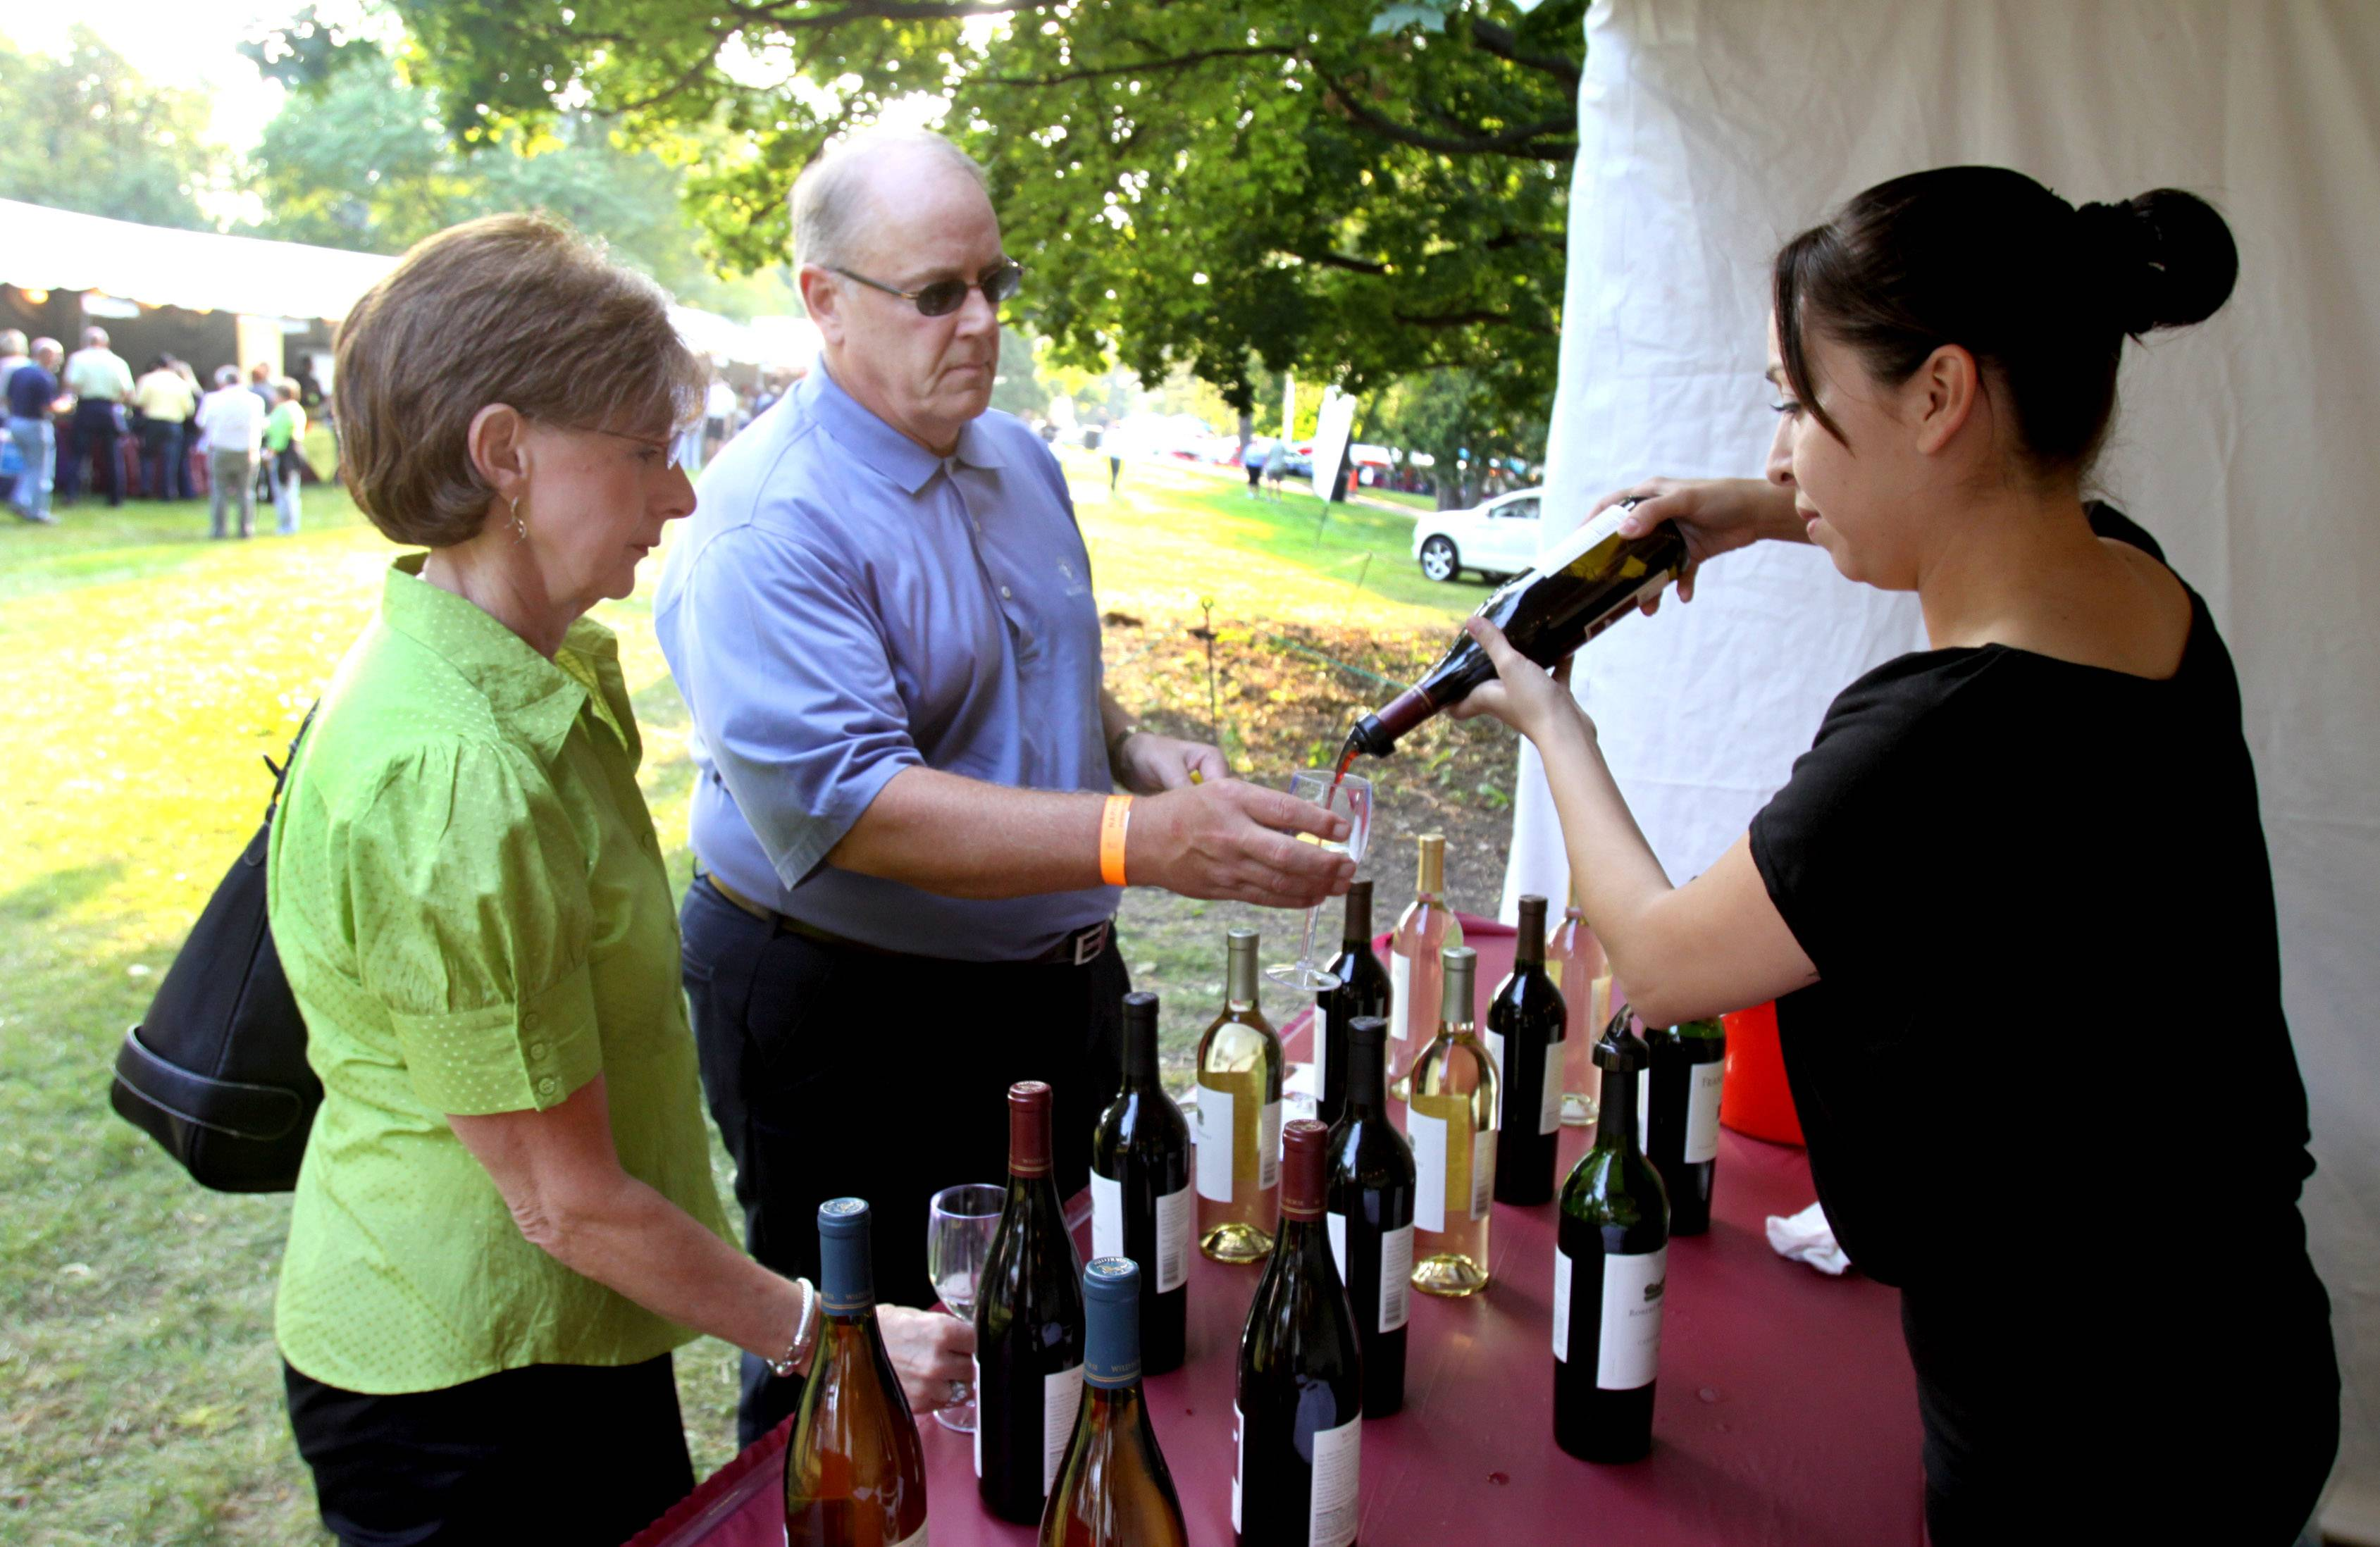 Visitors to the 12th annual Naperville Wine Festival can check out the booths of 59 vendors to taste new styles and learn about wineries. The event runs 4 to 10 p.m. Friday, Aug. 22, and 3 to 10 p.m. Saturday, Aug. 23, at CityGate Centre.